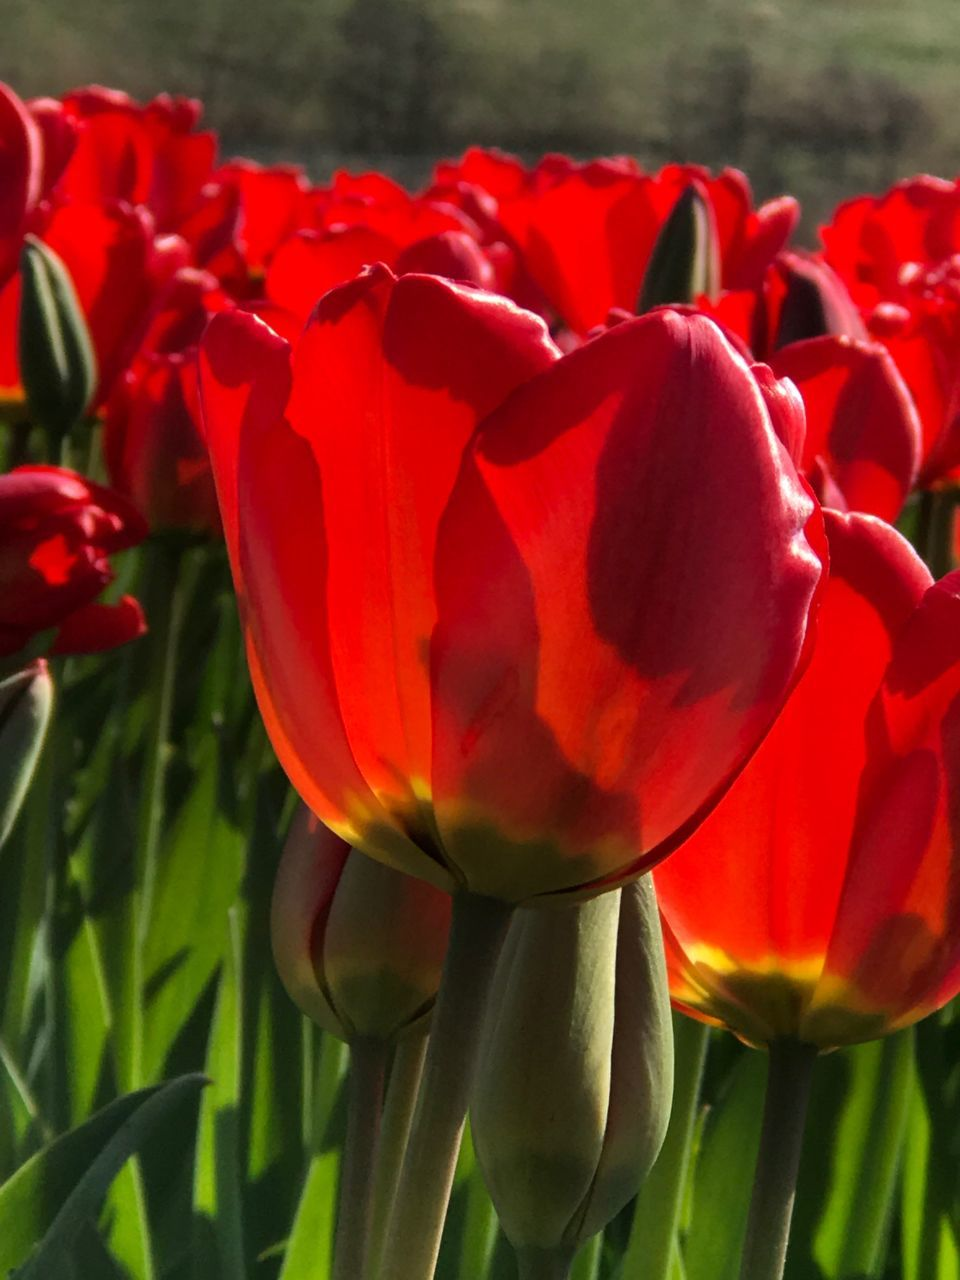 flower, petal, beauty in nature, nature, fragility, growth, freshness, flower head, red, plant, blooming, tulip, no people, close-up, outdoors, day